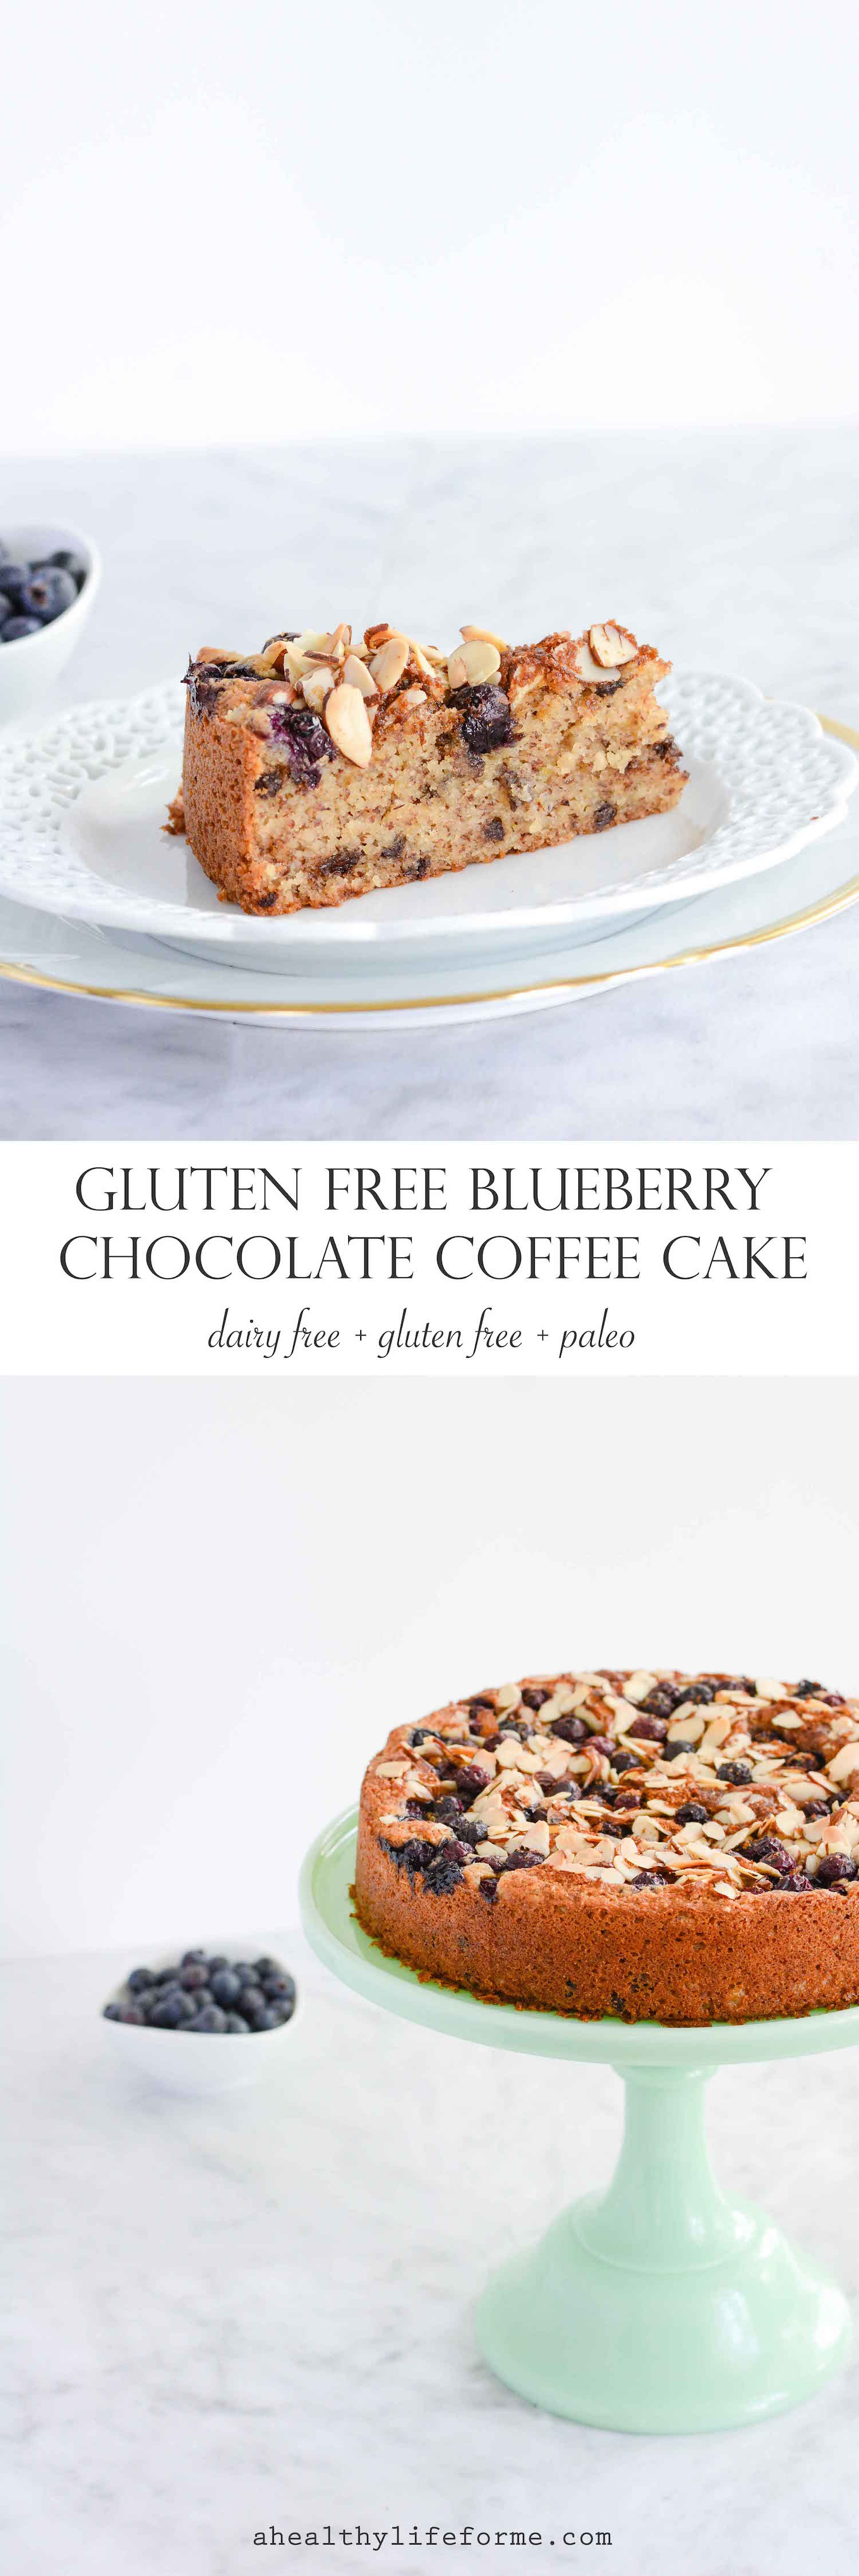 Gluten Free Blueberry Chocolate Cake is a moist delicious cake that is gluten free, dairy free and paleo. - A Healthy Life For Me